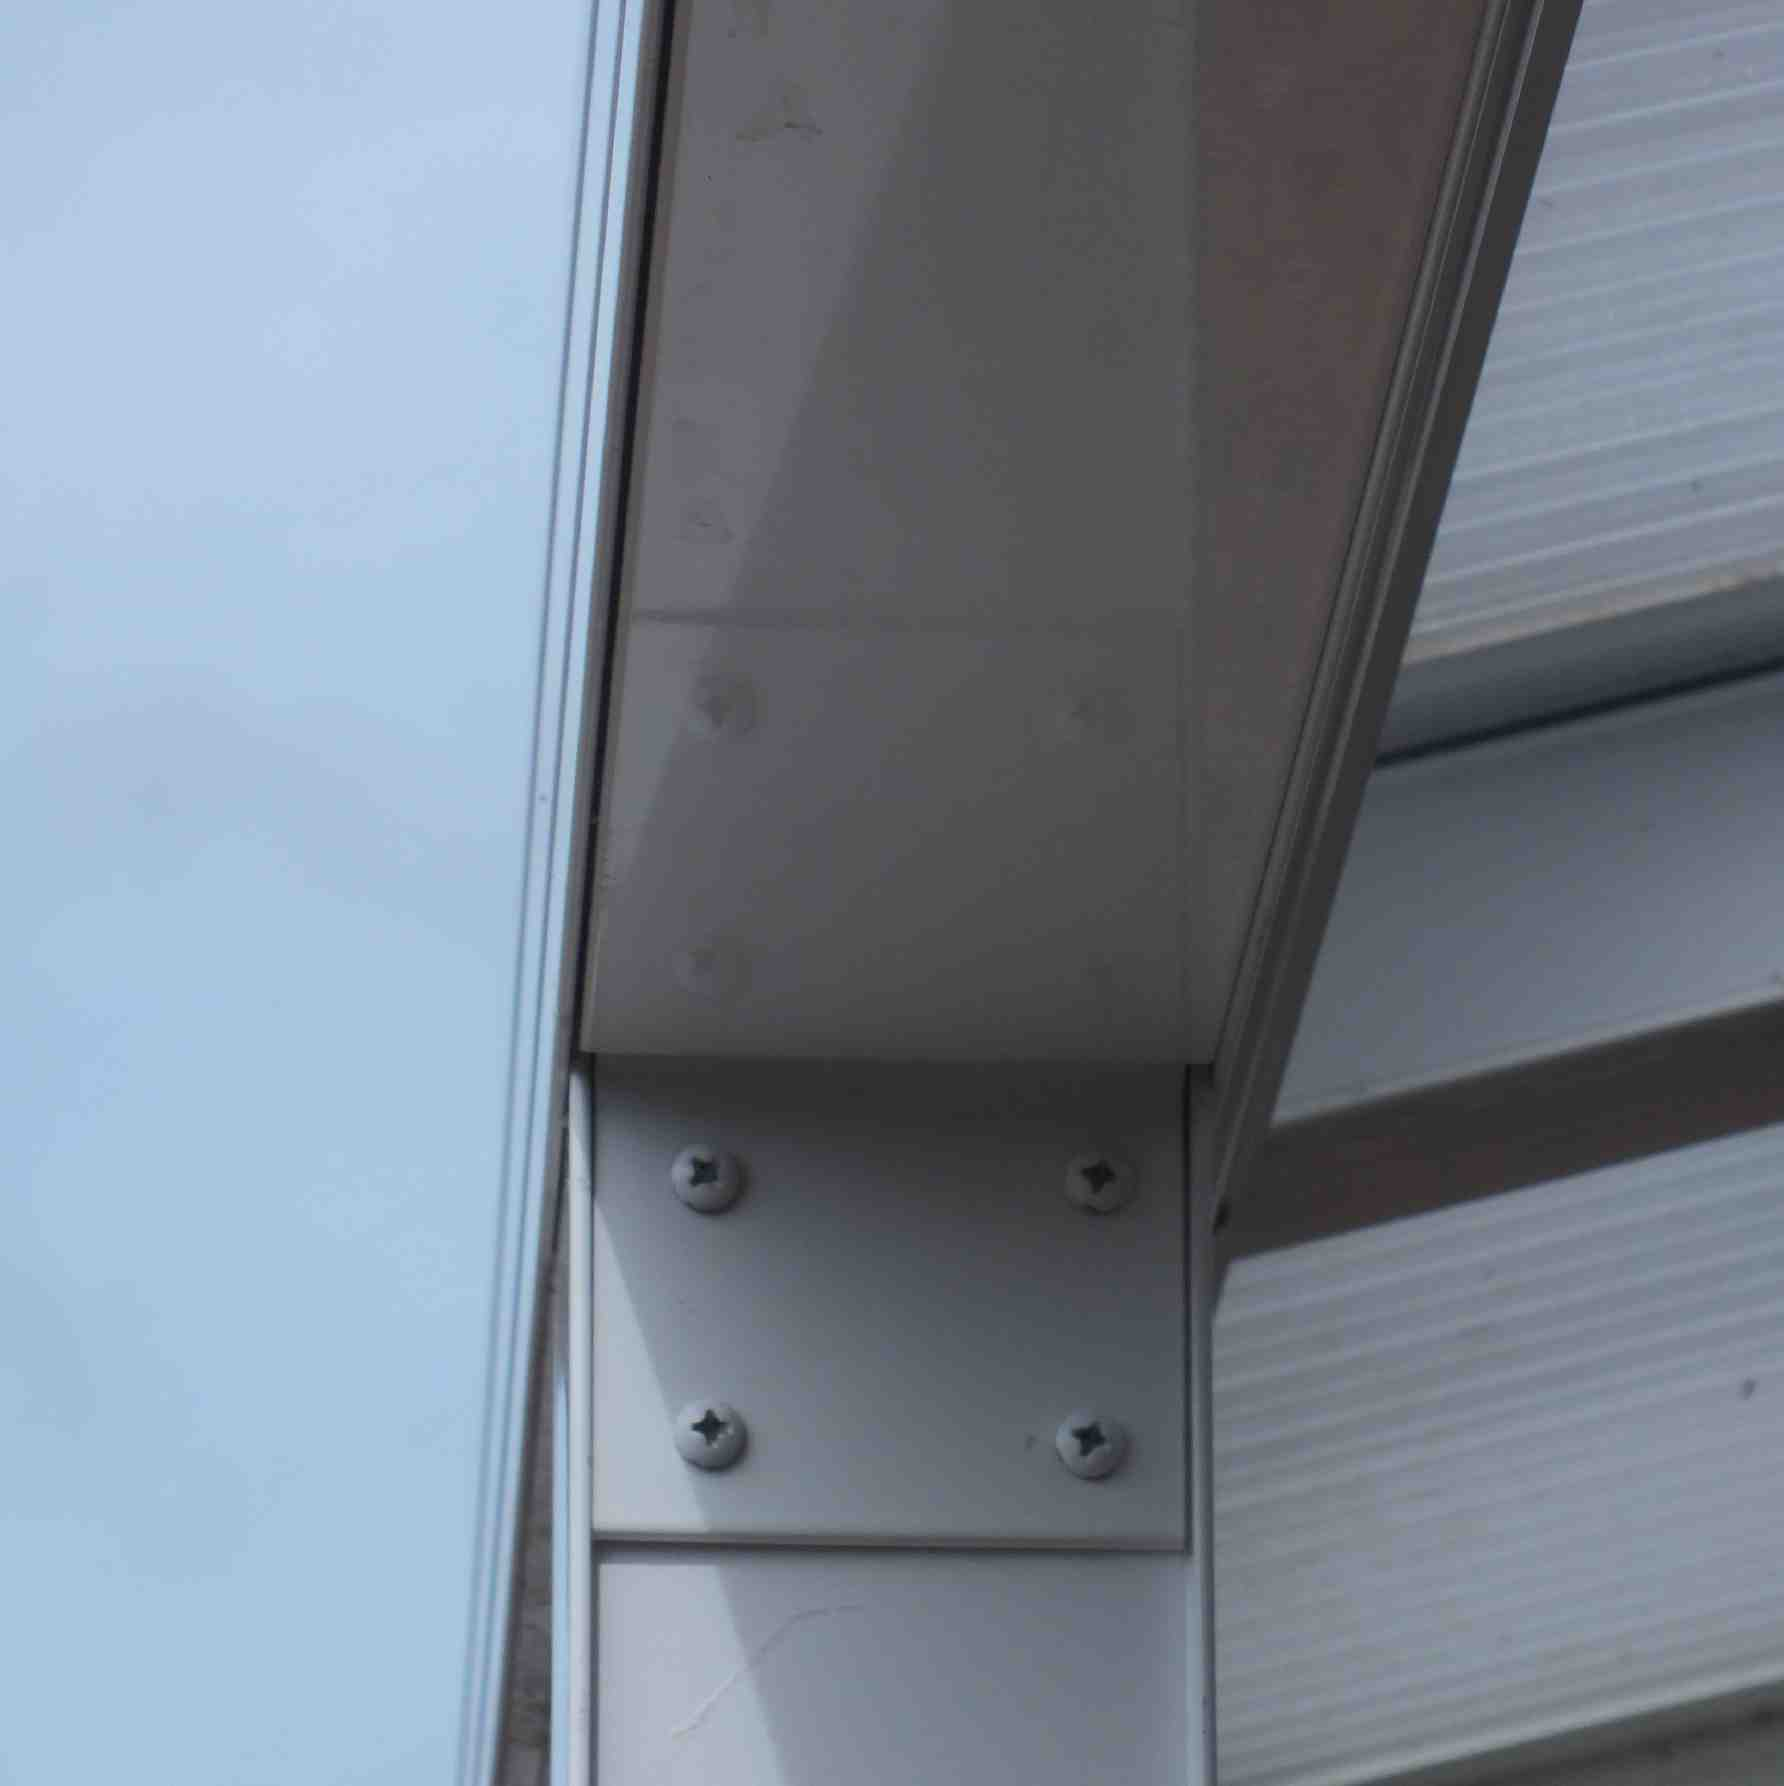 Affordable Omega Verandah with 16mm Polycarbonate Glazing - 10.2m (W) x 4.5m (P), (5) Supporting Posts